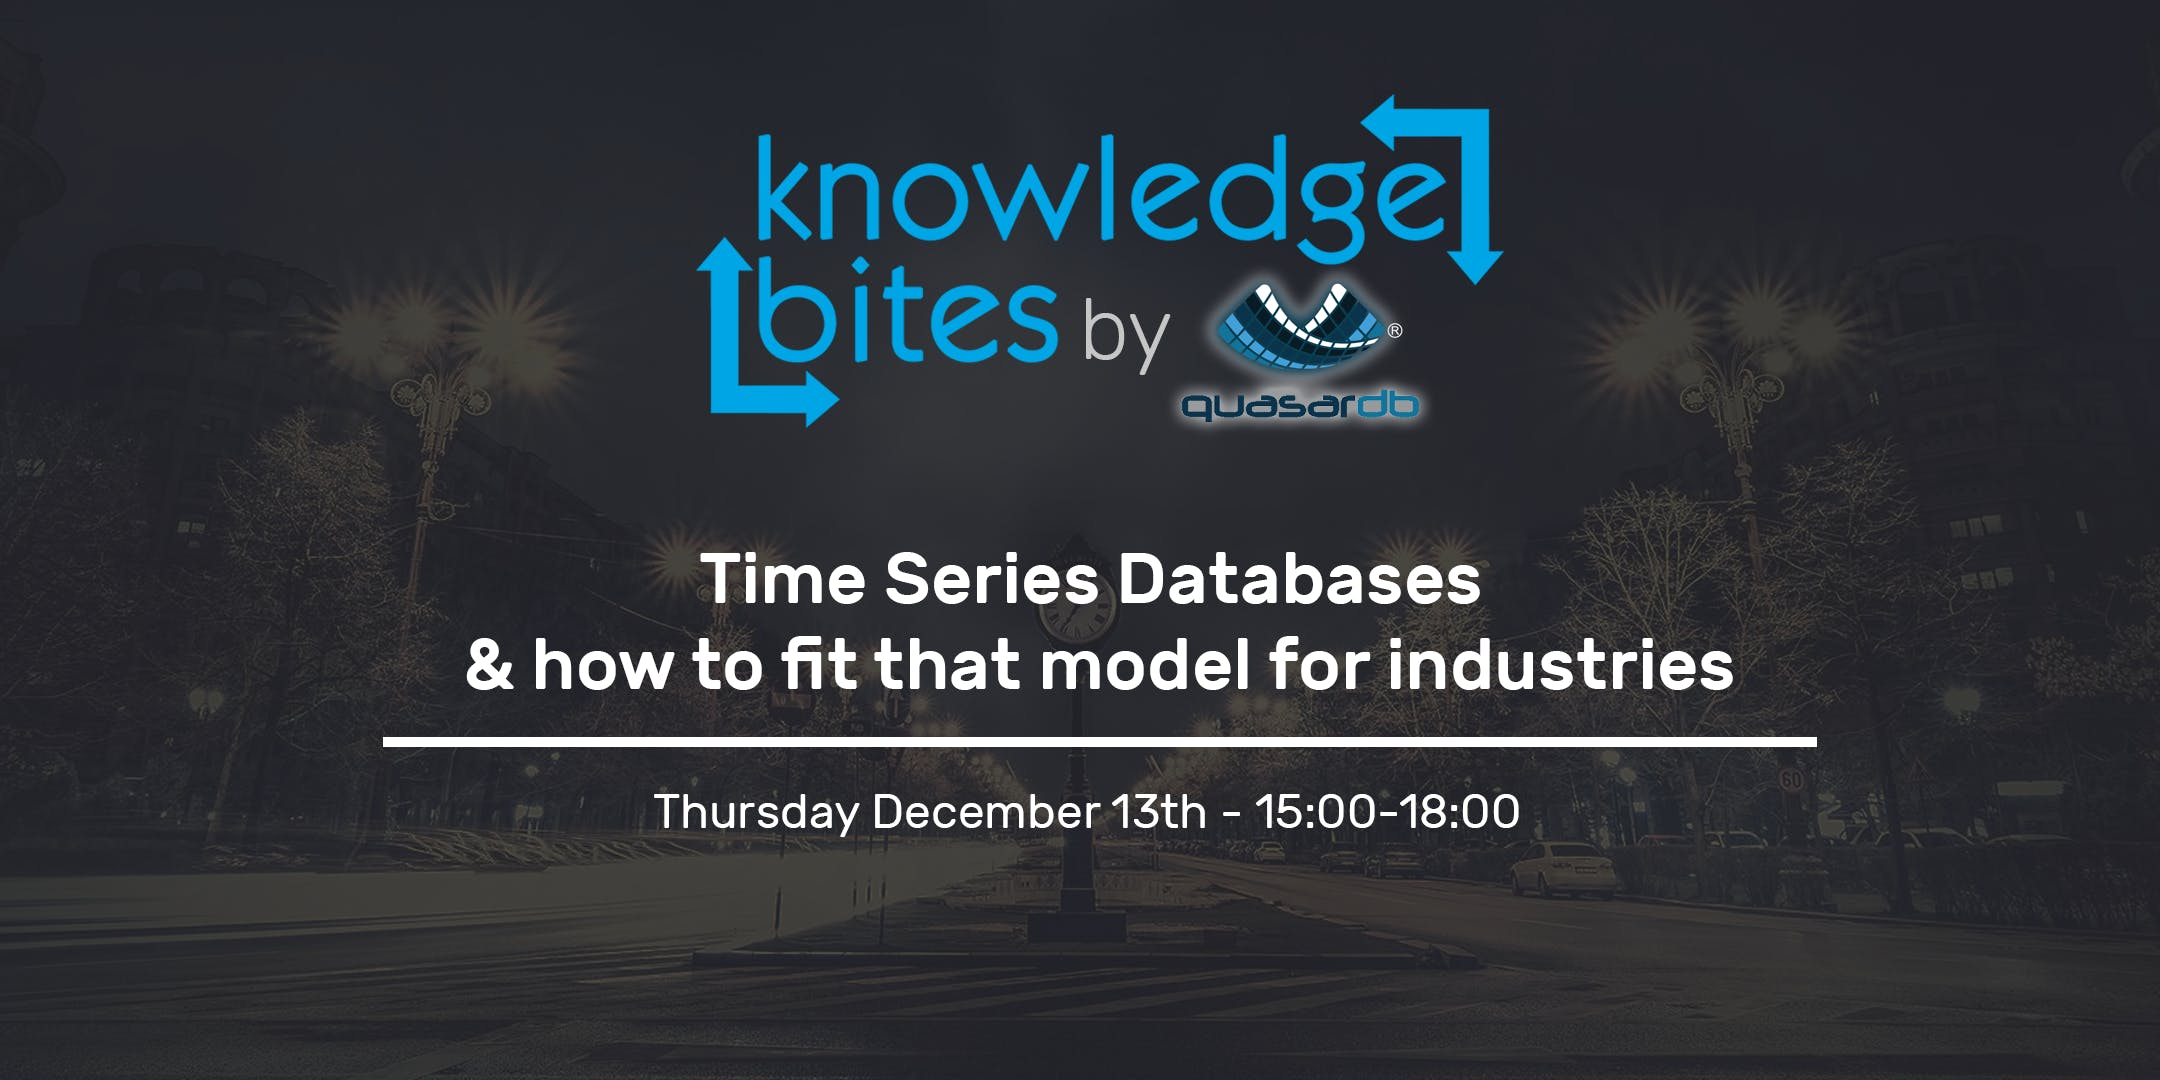 Knowledge Bites: Time Series Databases & how